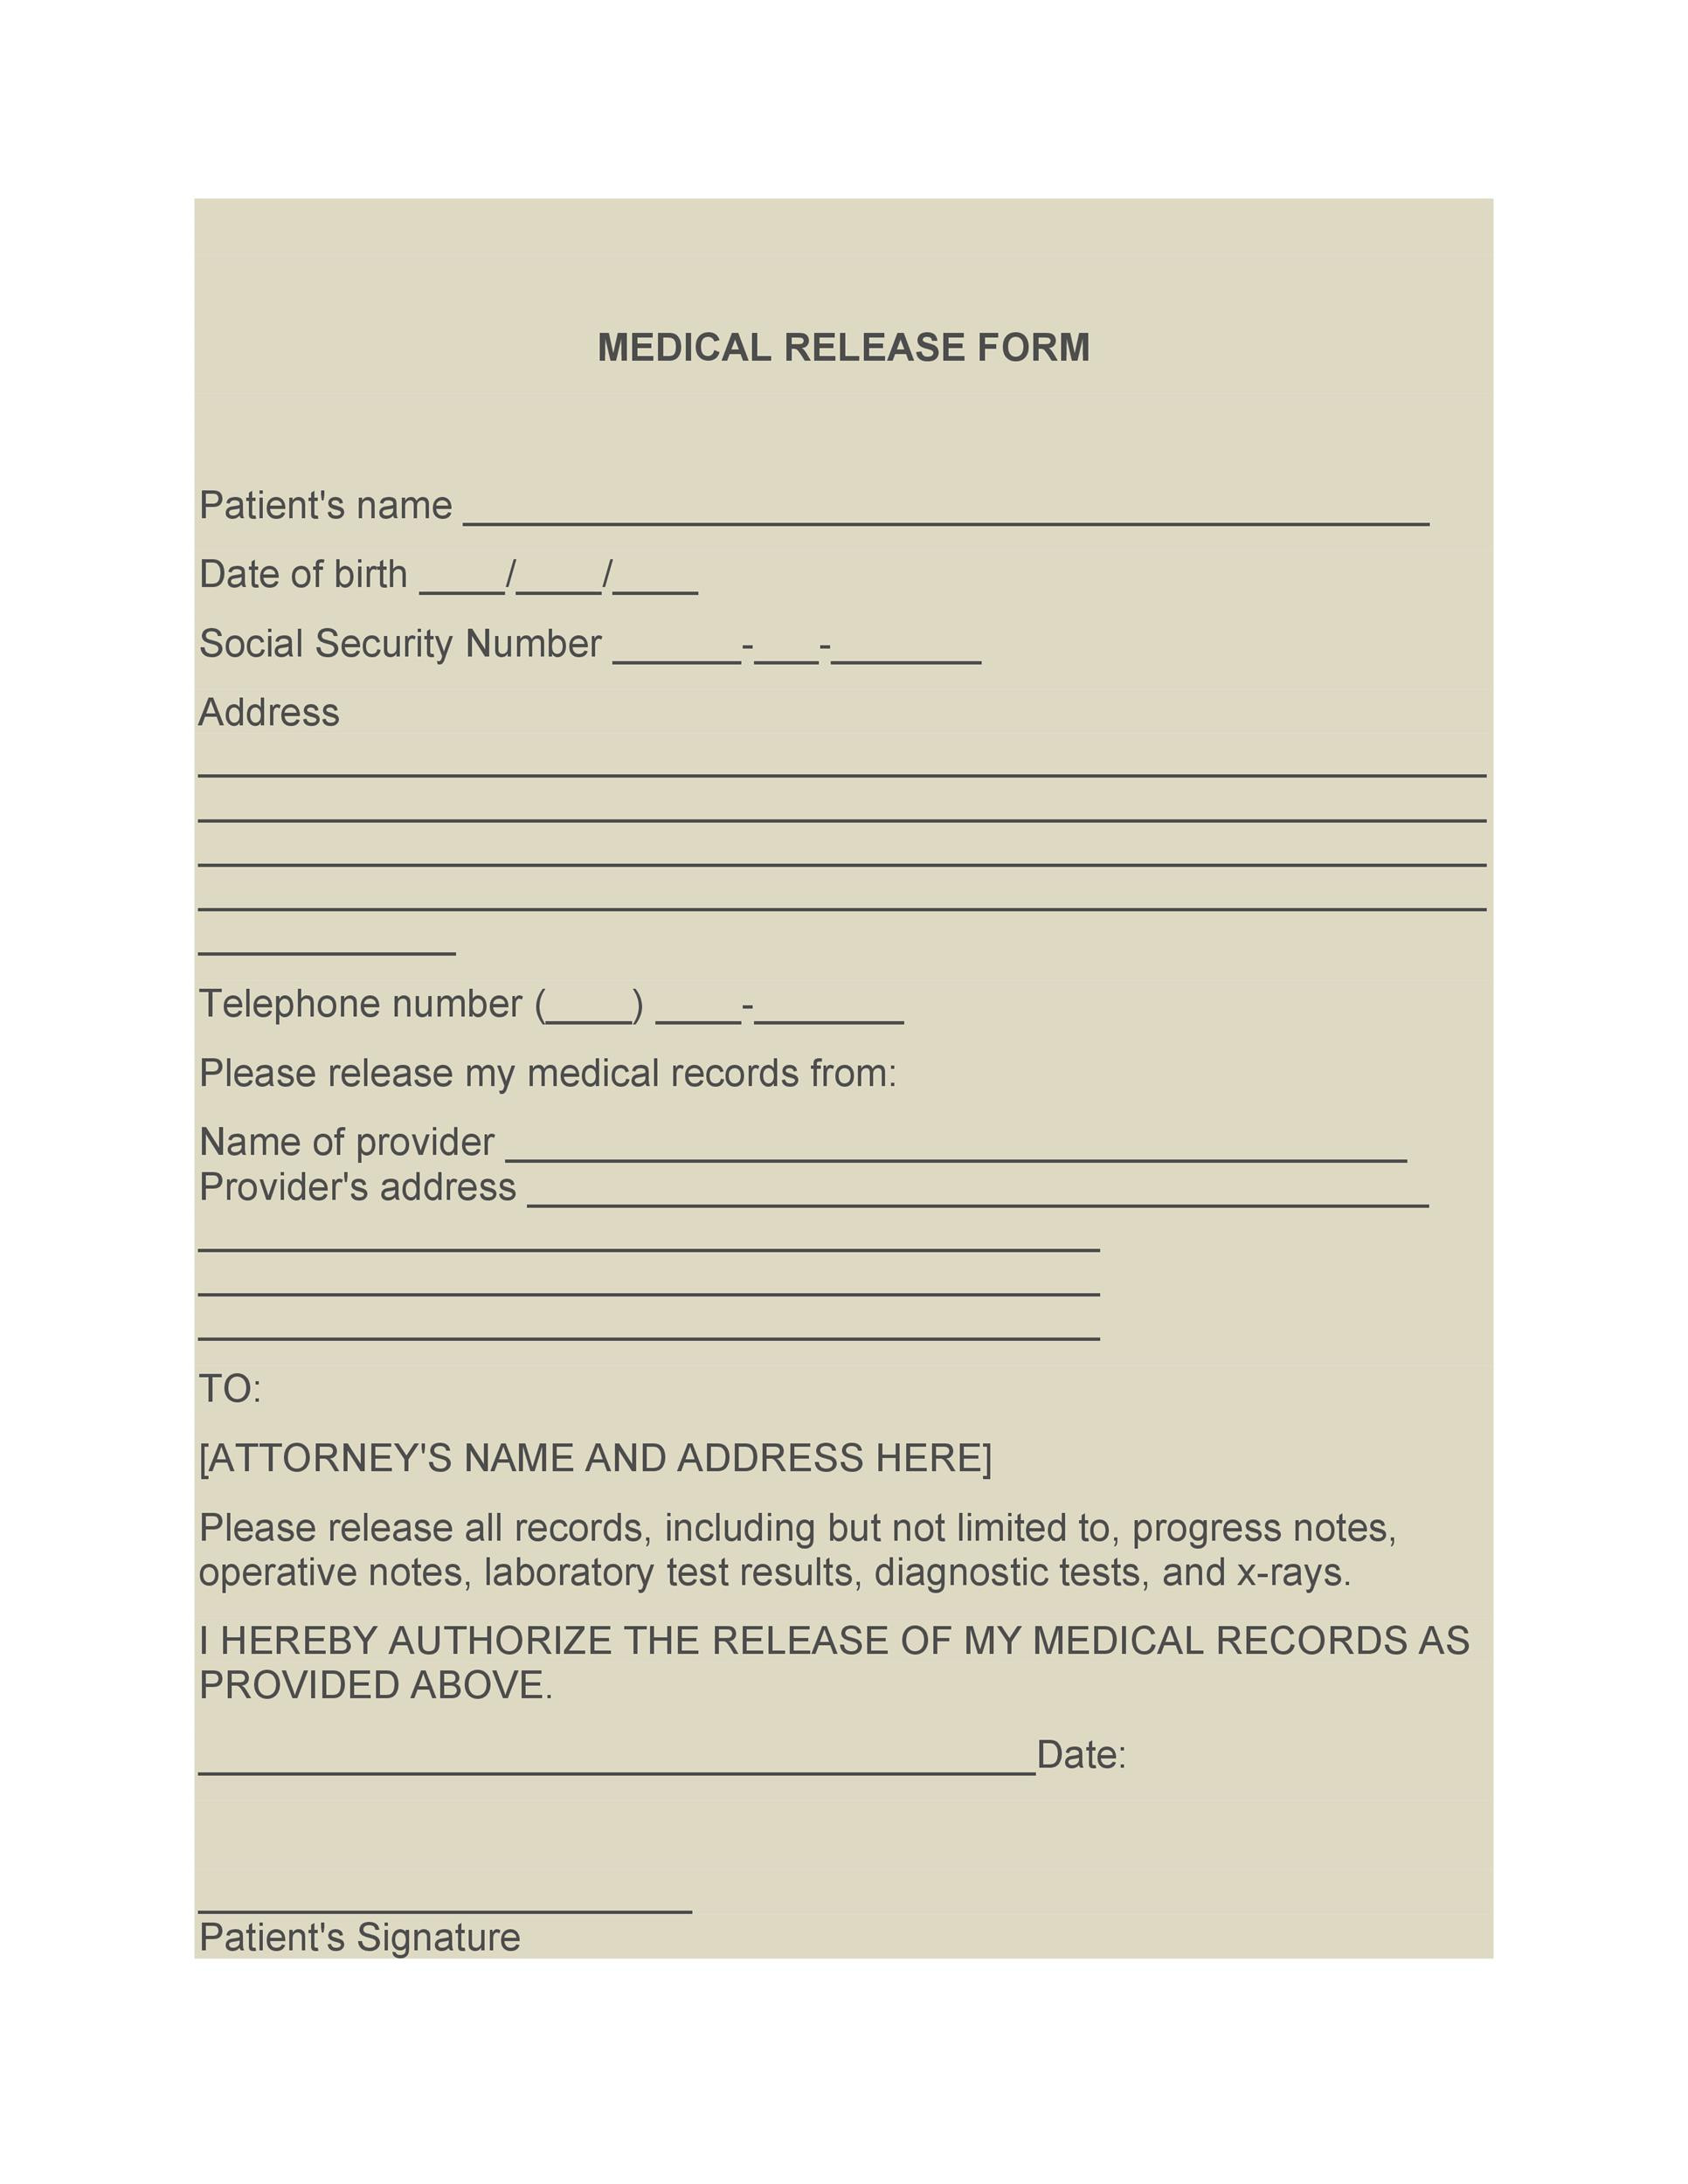 30 Medical Release Form Templates TemplateLab